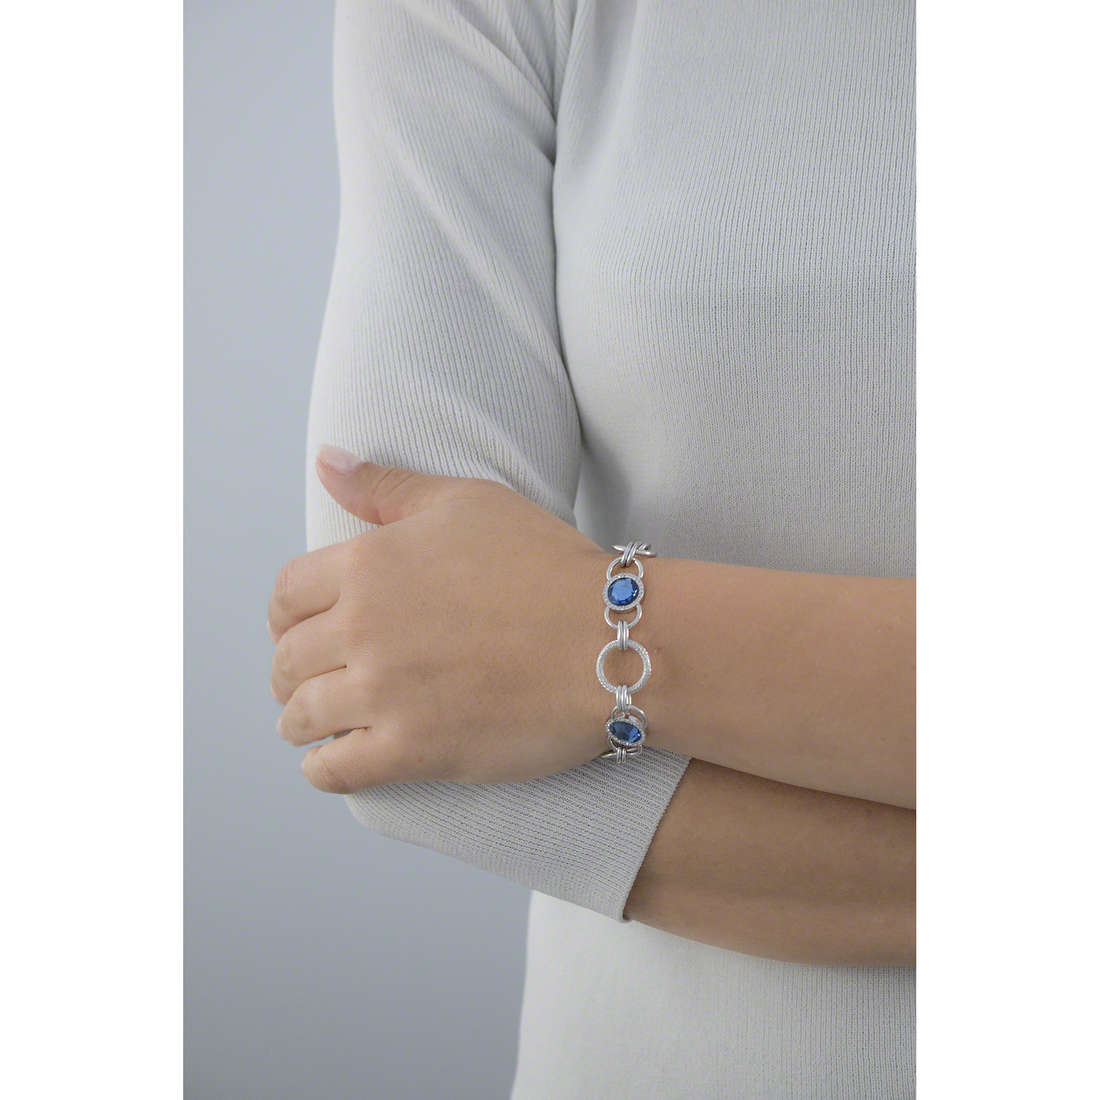 Morellato bracelets Essenza femme SAGX09 photo wearing